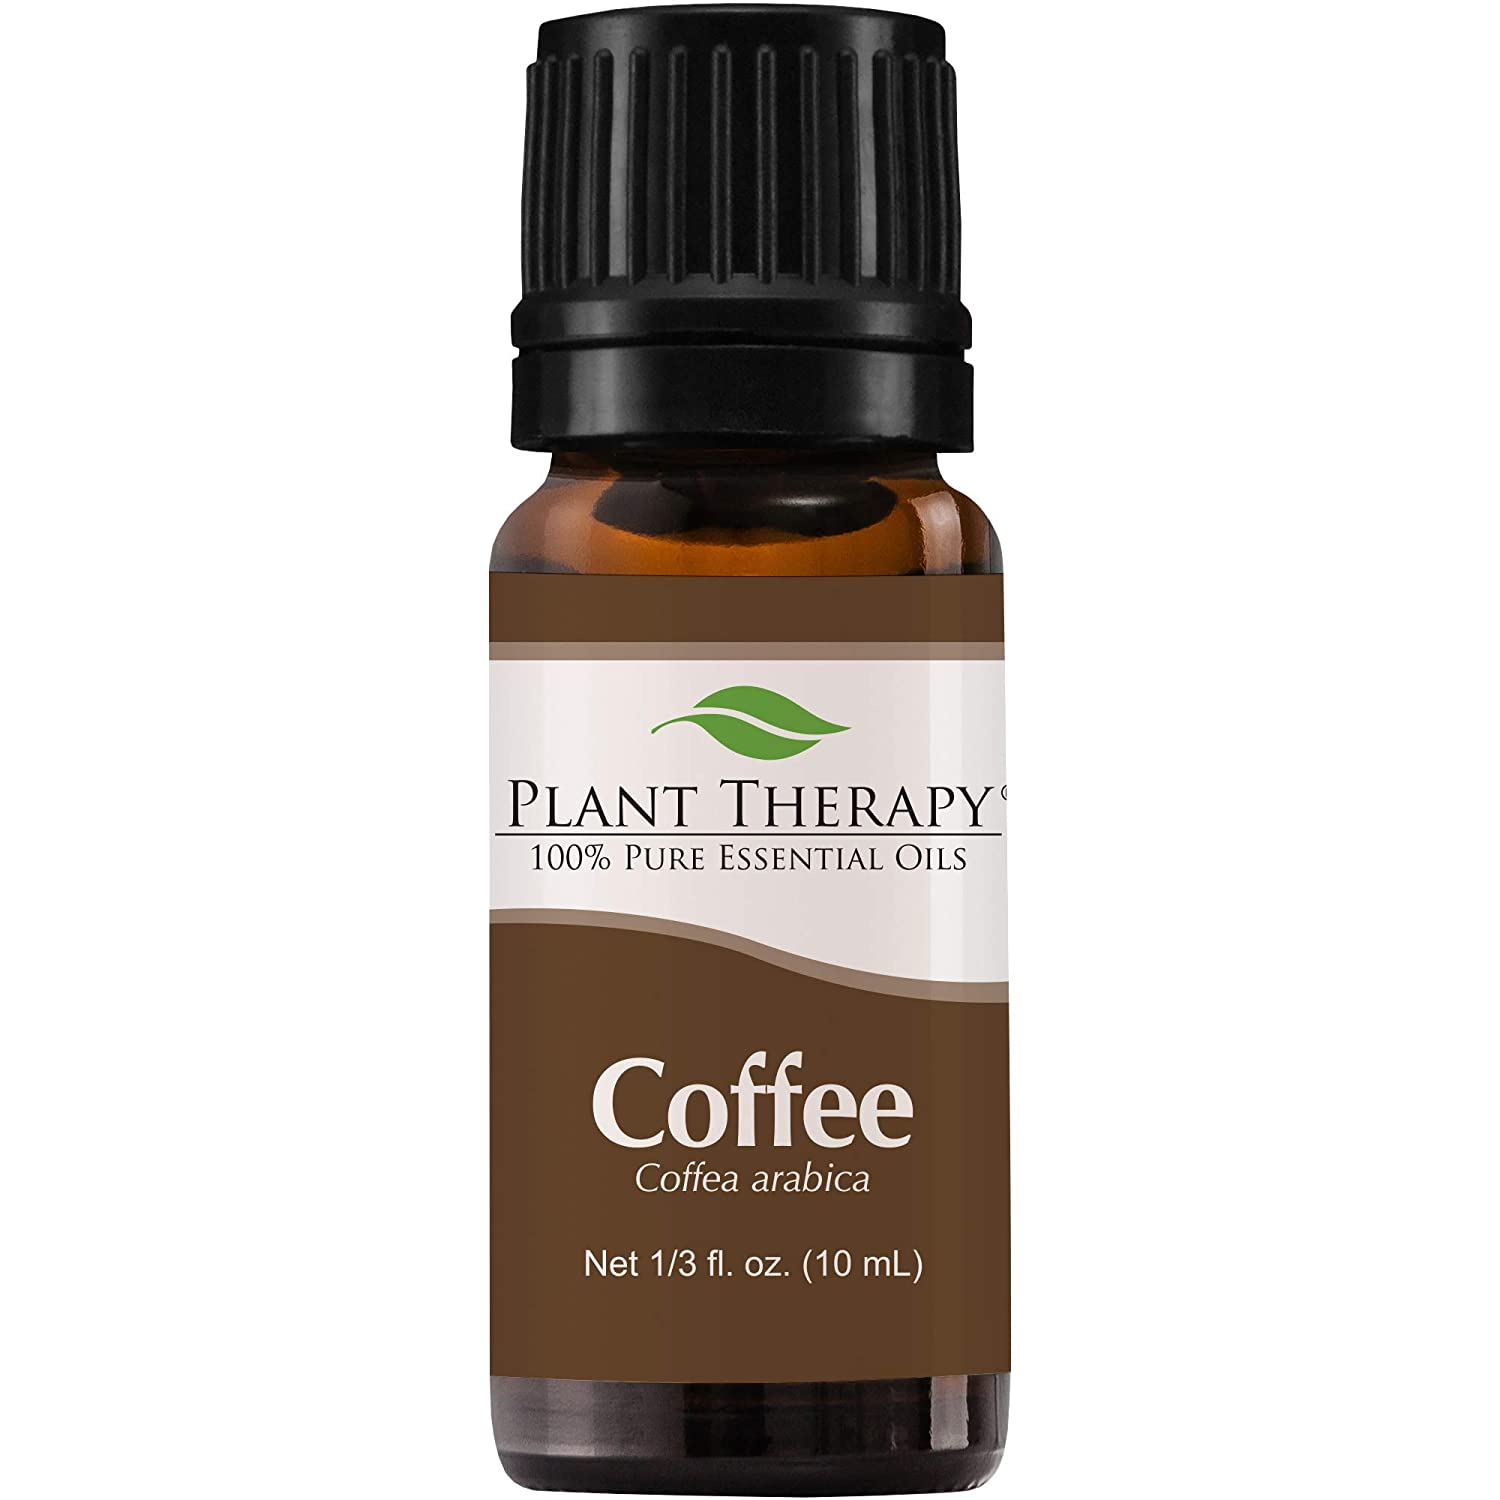 Plant Therapy Coffee Essential Oil 100% Pure, Undiluted, Natural Aromatherapy, Therapeutic Grade 10 mL (1/3 oz)